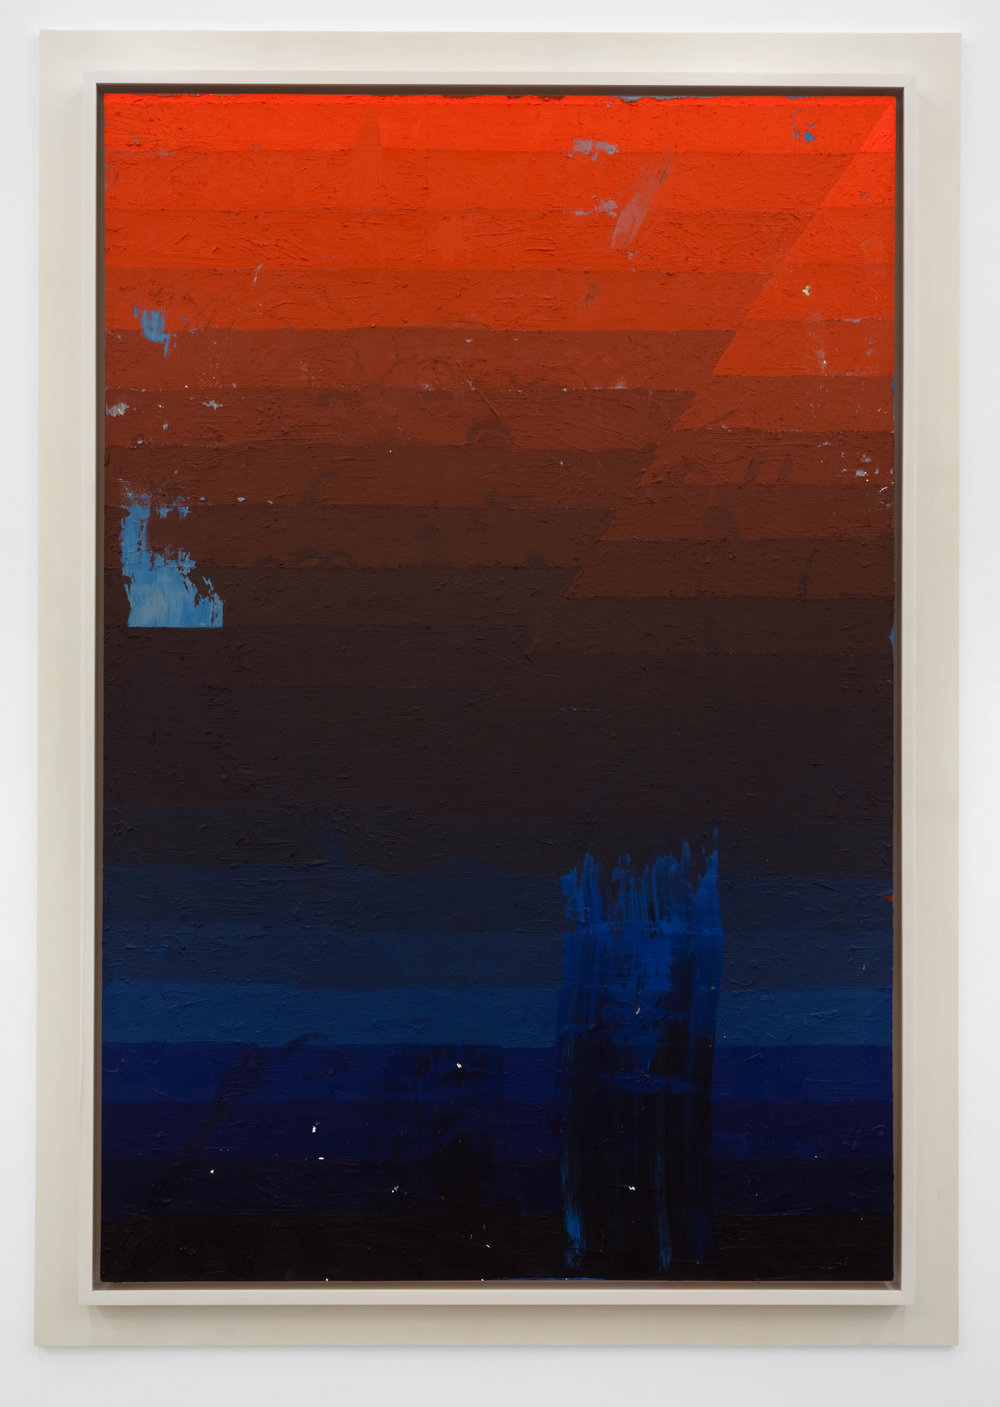 Execution Changes #45 (DS, Q1, LLJ, DC, Q2, URJ, LC), 2012 acrylic on panel 256,5 x 180,3 cm - 101 x 71 inches